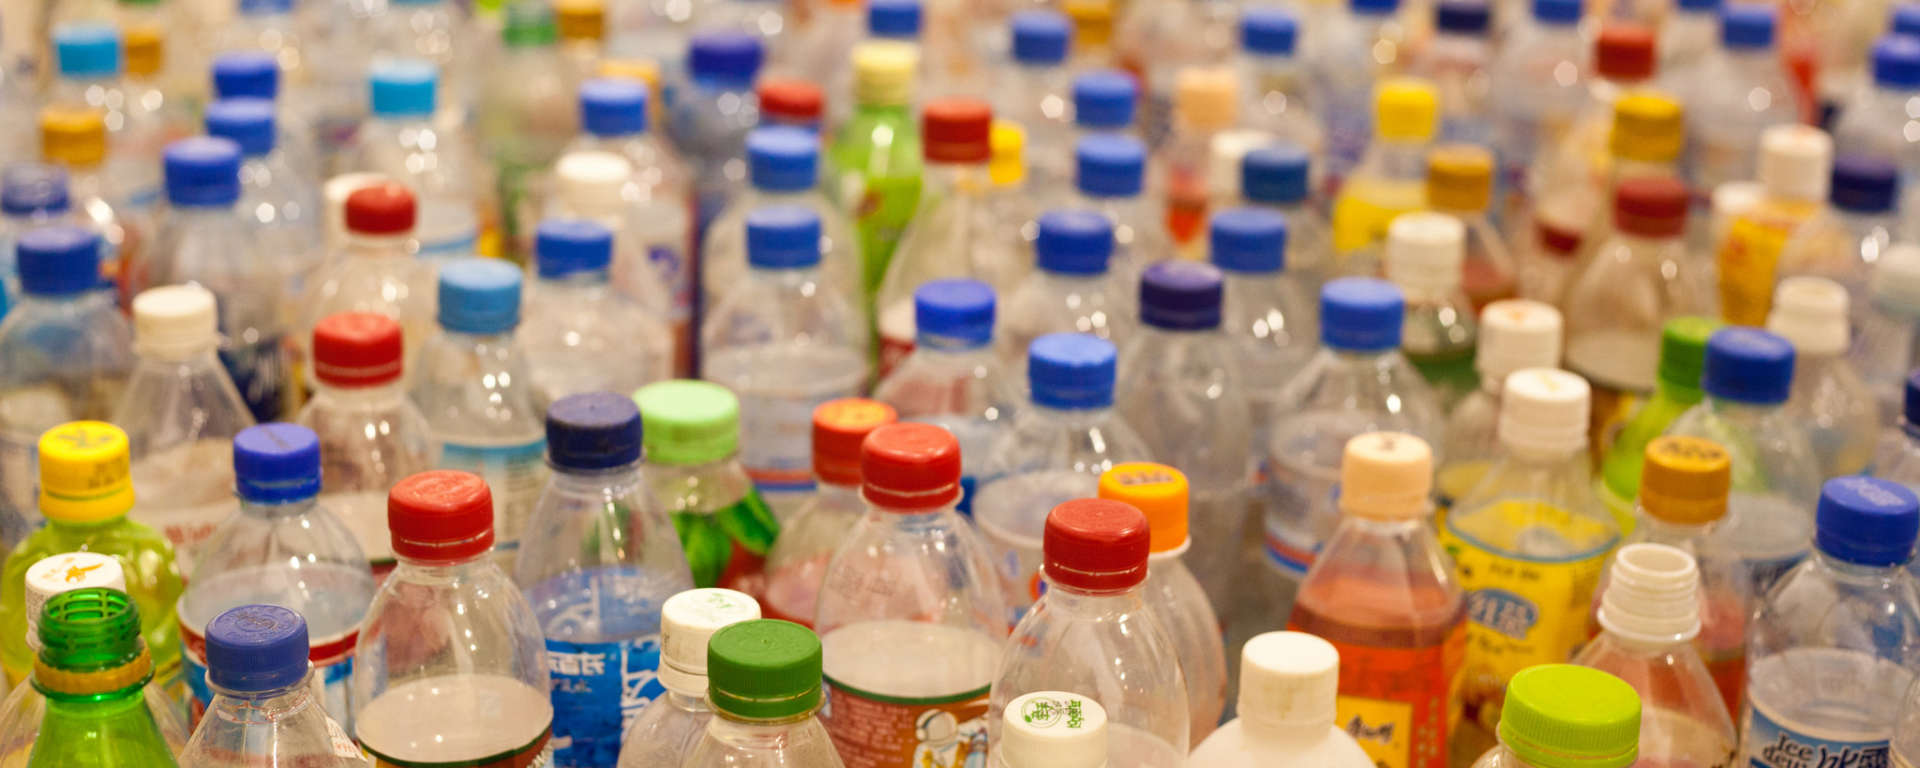 Plastic Bottles by Tom Page